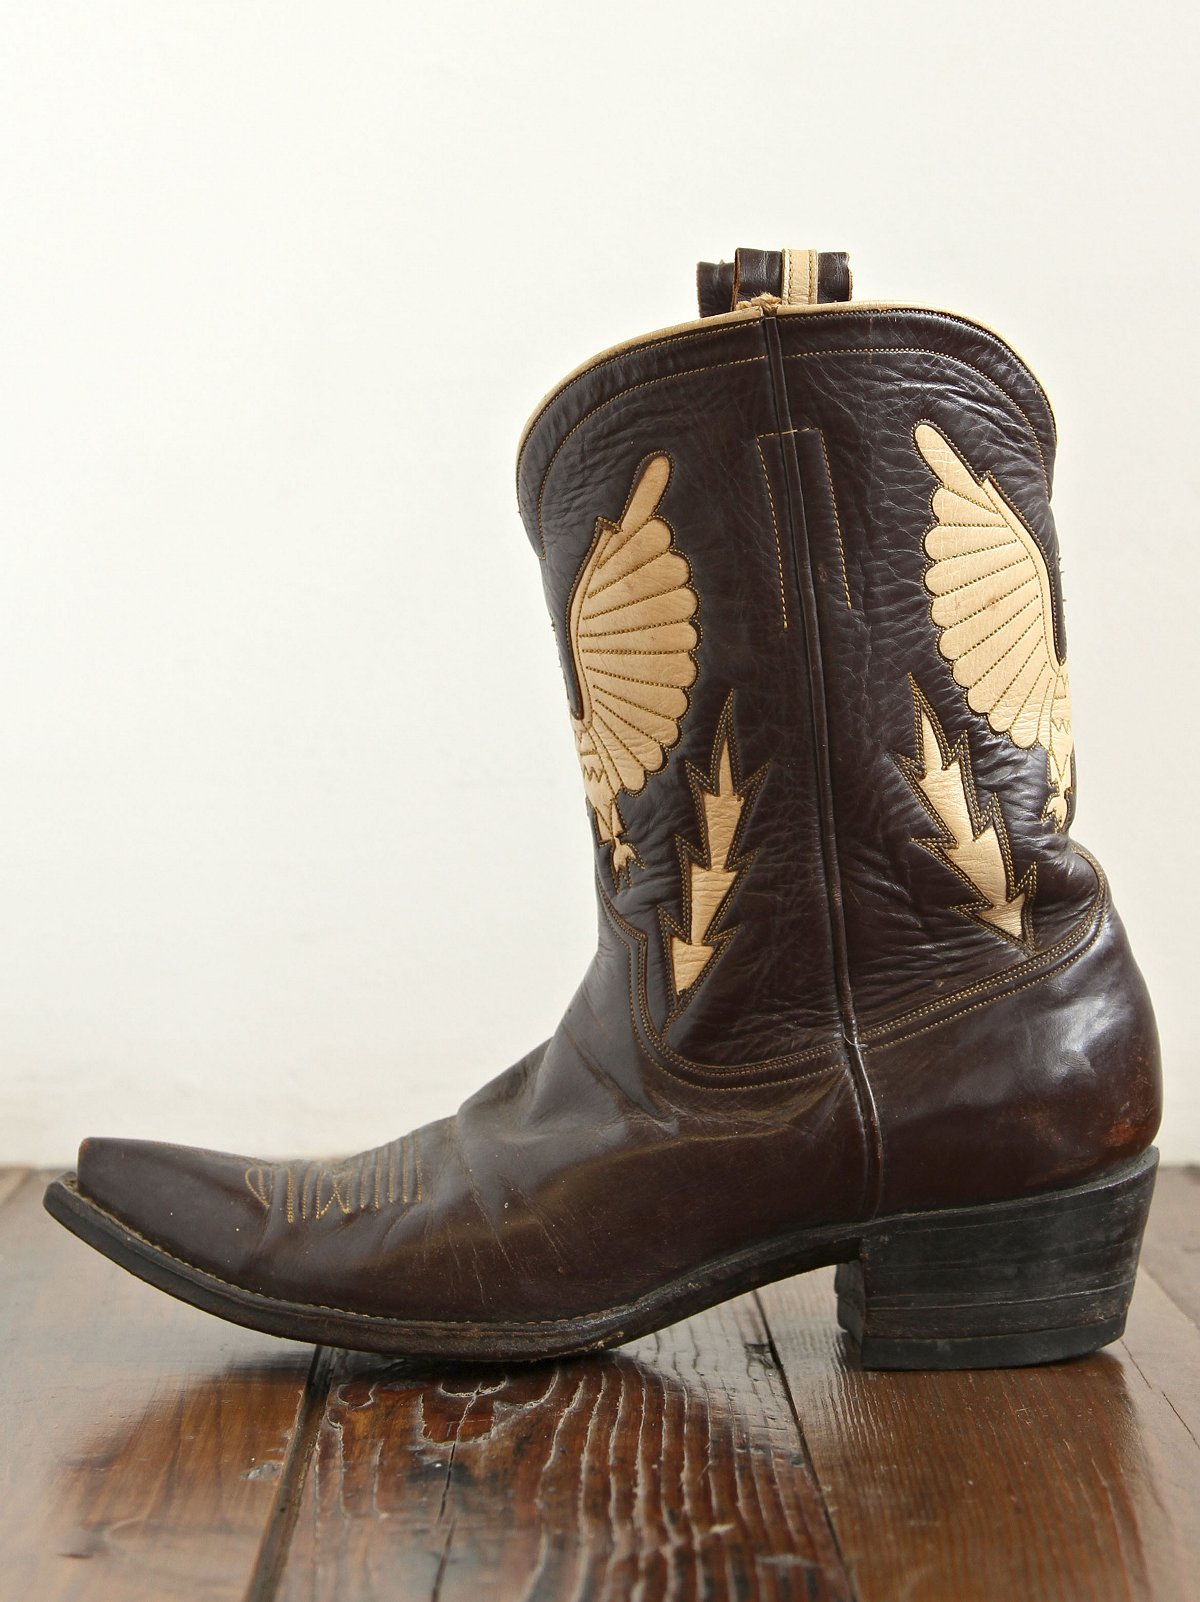 Vintage Black and Beige Leather Boots